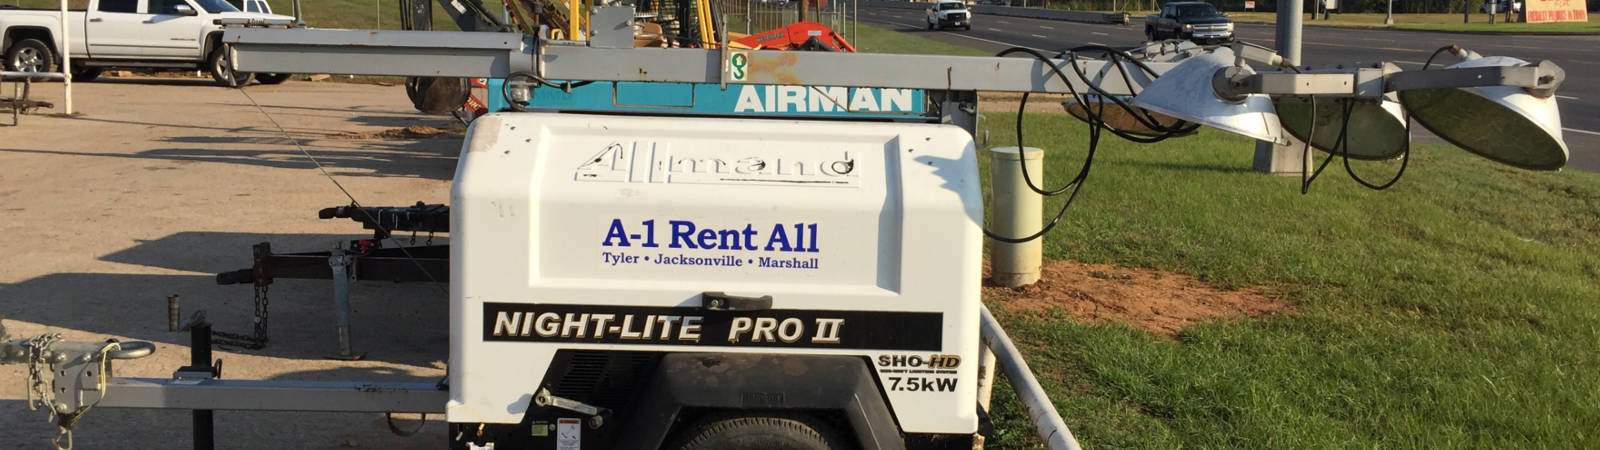 Equipment Rentals in East Texas